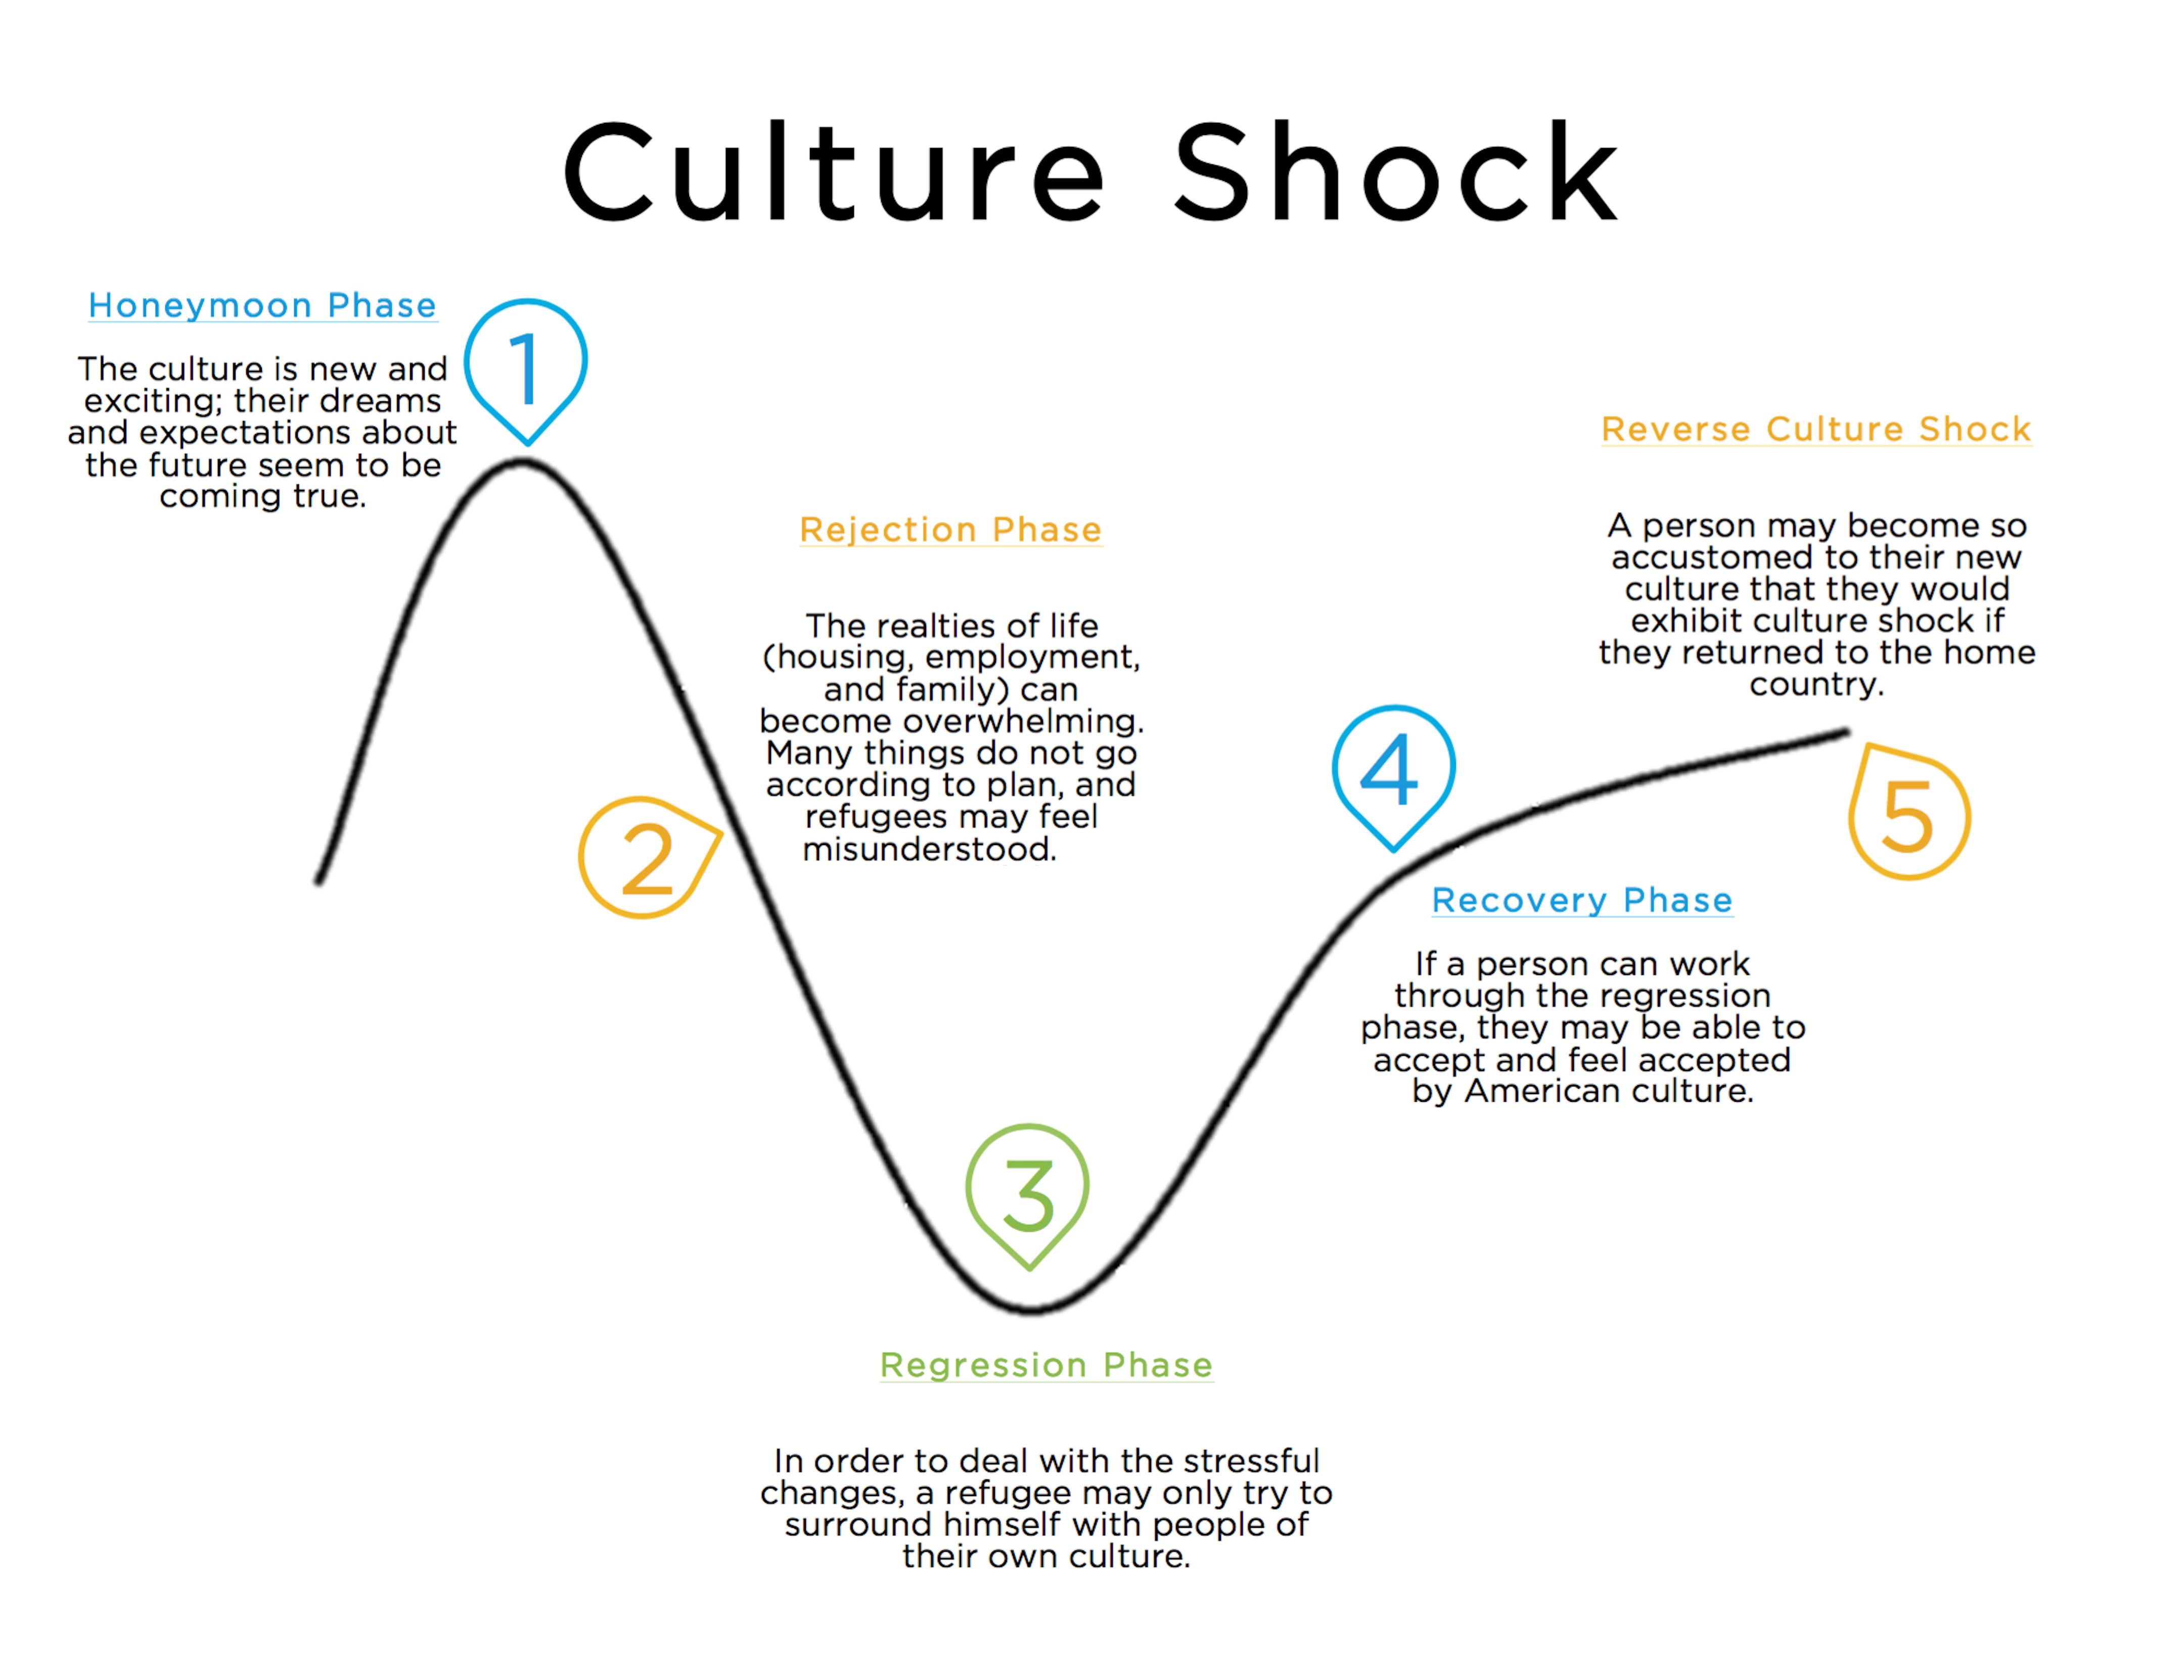 Culture Shock Phases